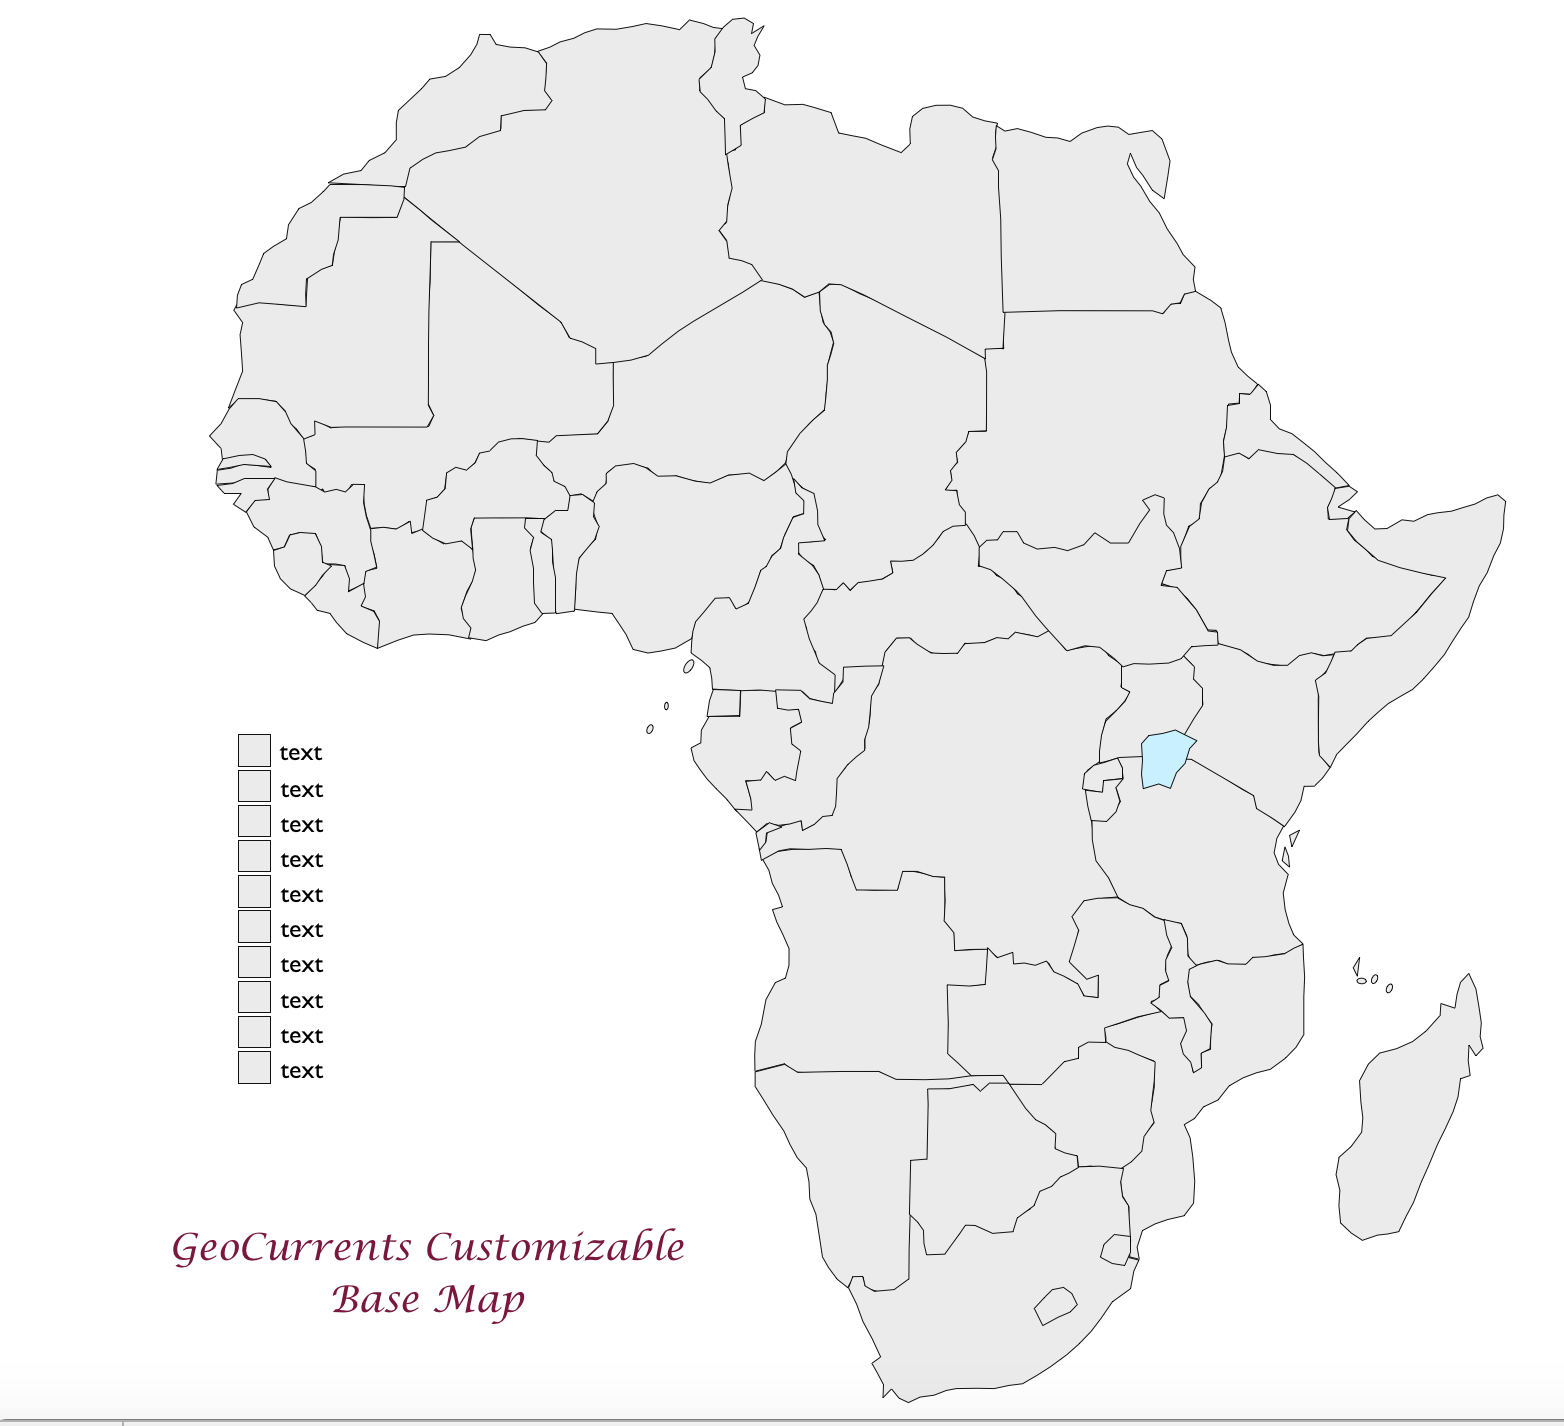 Image of: Free Customizable Maps Of Africa For Download Geocurrents